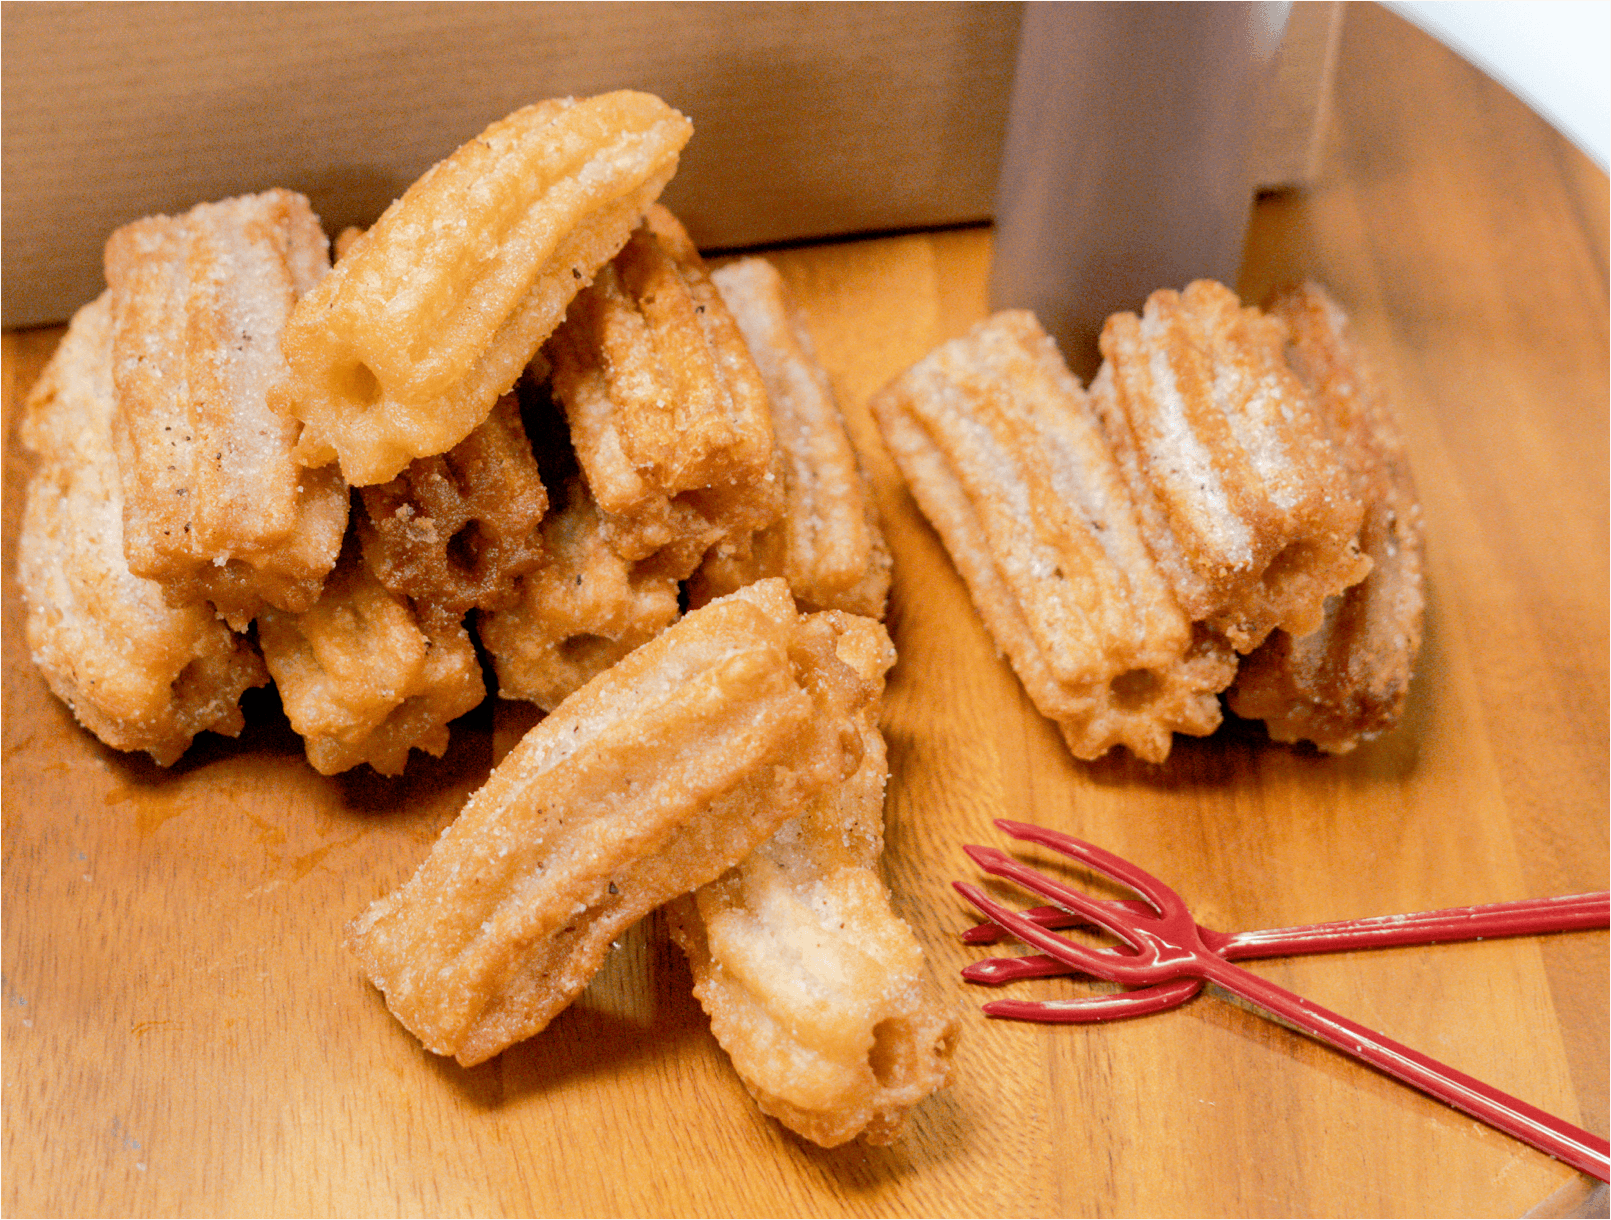 Refill Pack: Take & Bake Churro Kit